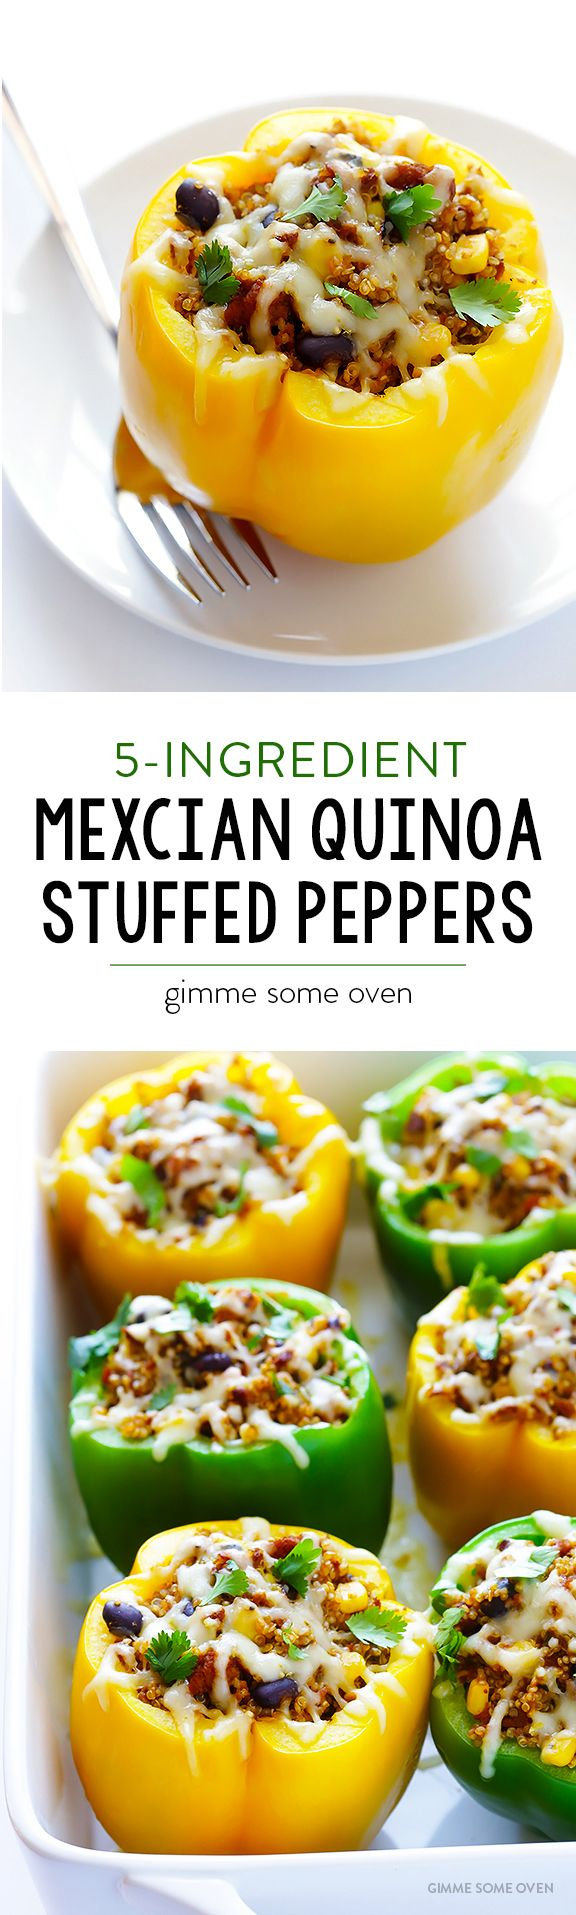 5-Ingredient Mexican Quinoa Stuffed Peppers - Vegetarian, simple to make, and super delicious!